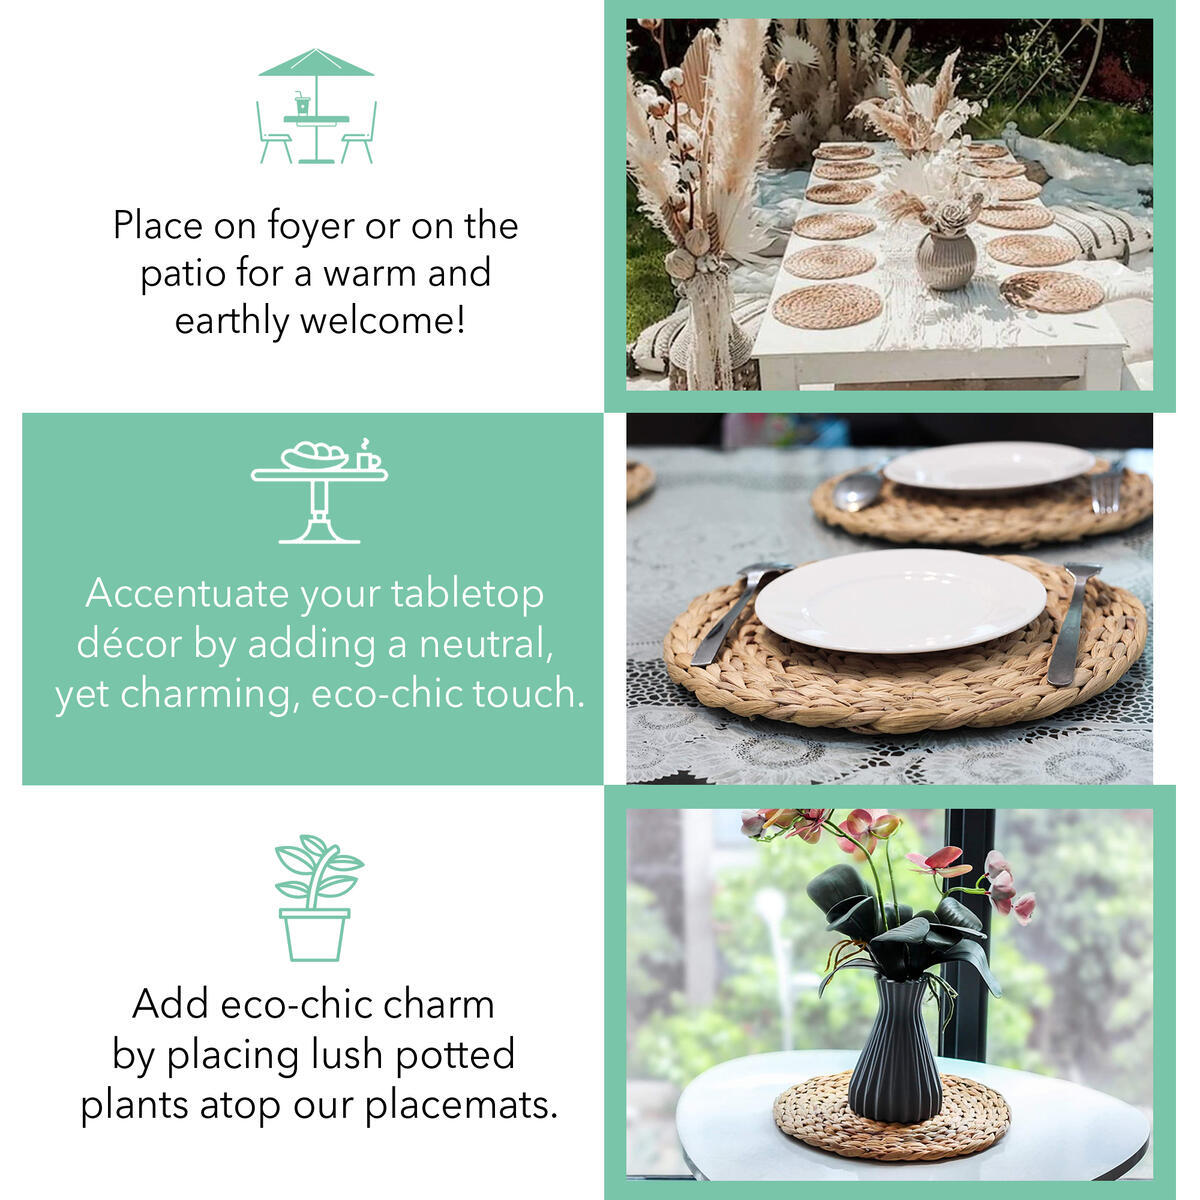 Set of 4 Woven Placemats - BONUS Set of 4 Premium Cloth Napkins to Compliment your Woven Placemat - Braided Seagrass Fiber for Eco Friendly, Natural Placemats - Round and Thick Woven Charger Placemats